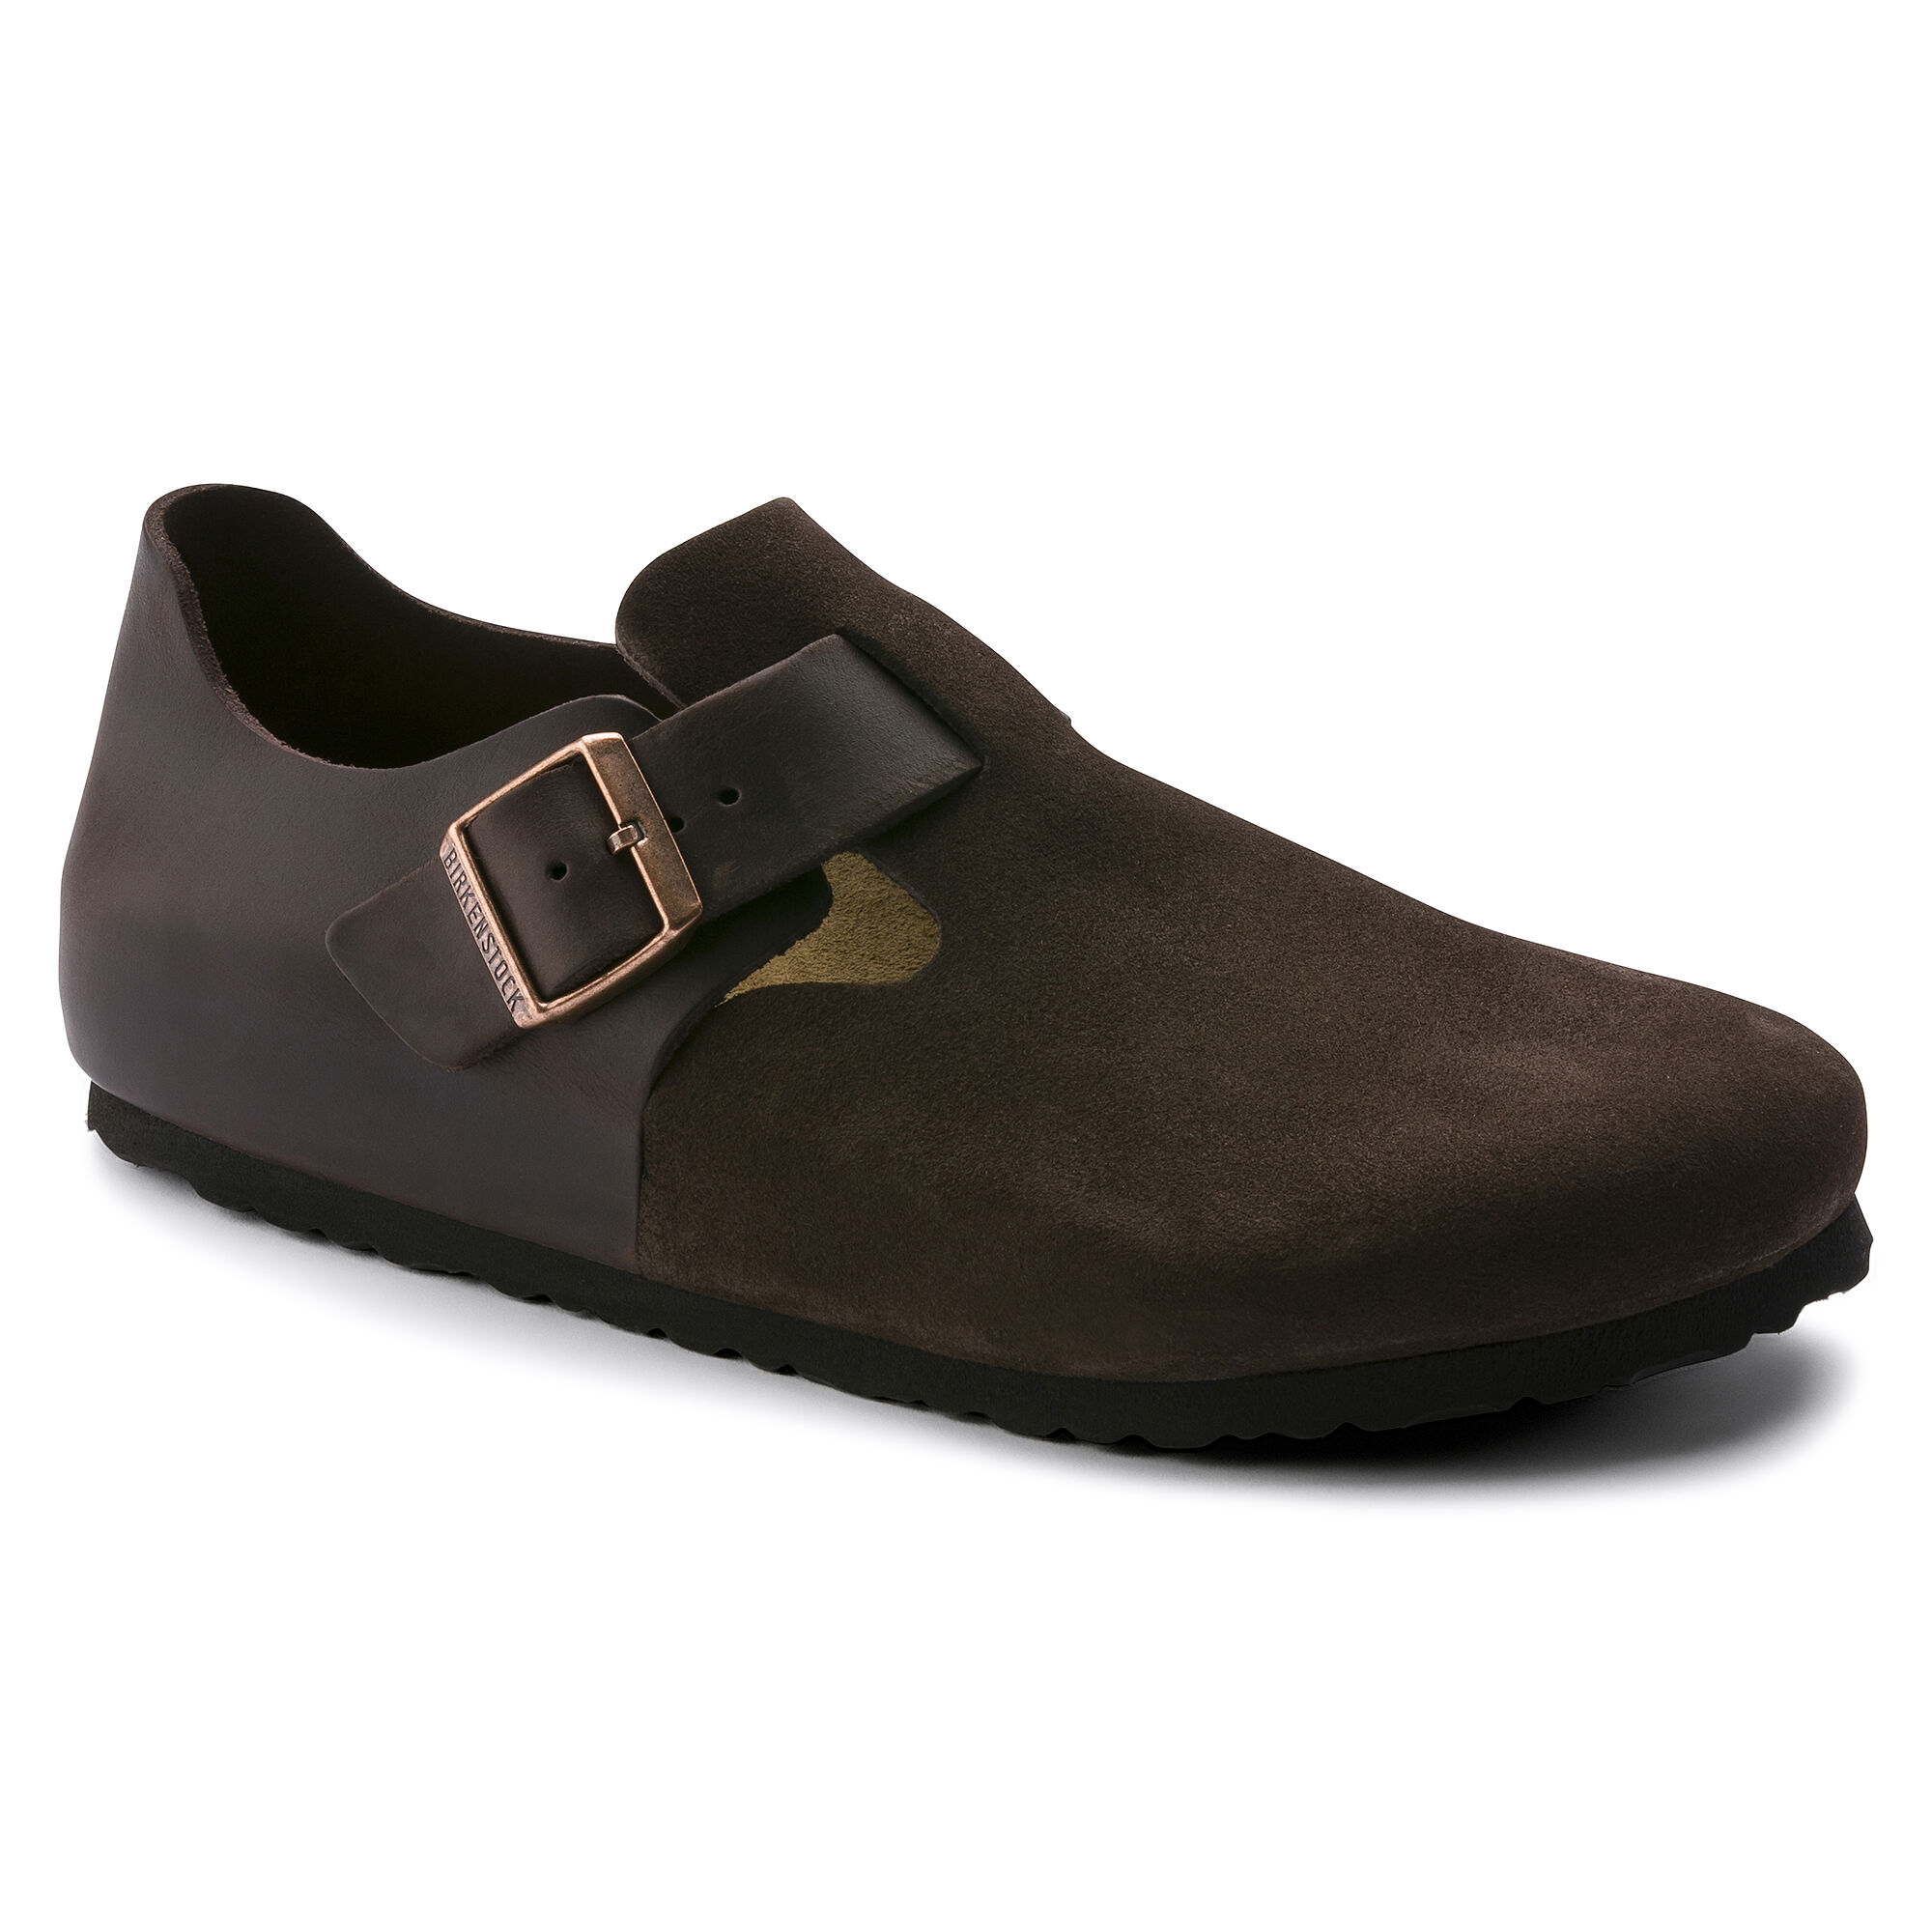 At Comfortable Birkenstock Women's Online ShoesBuy WHeDE92IY